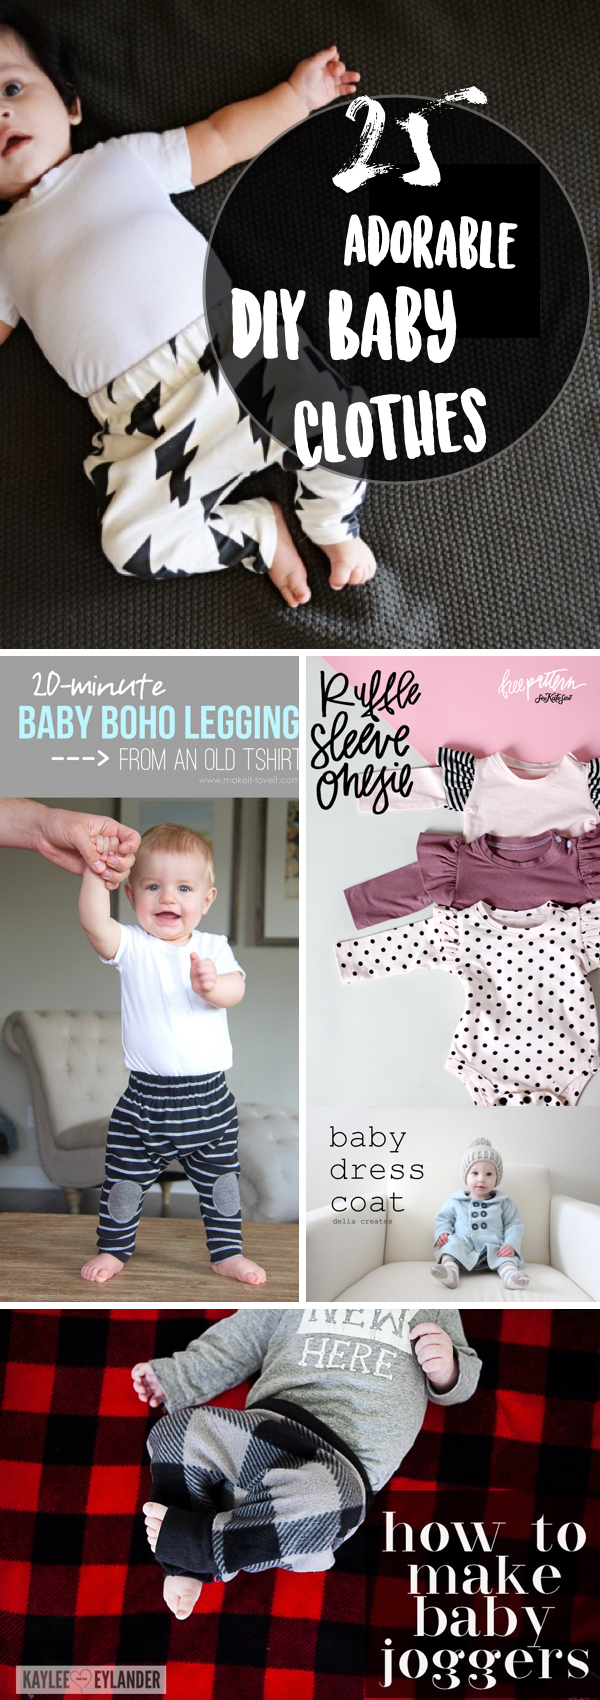 25 Unbelievably Adorable DIY Baby Clothes You Can Put Together At Home!